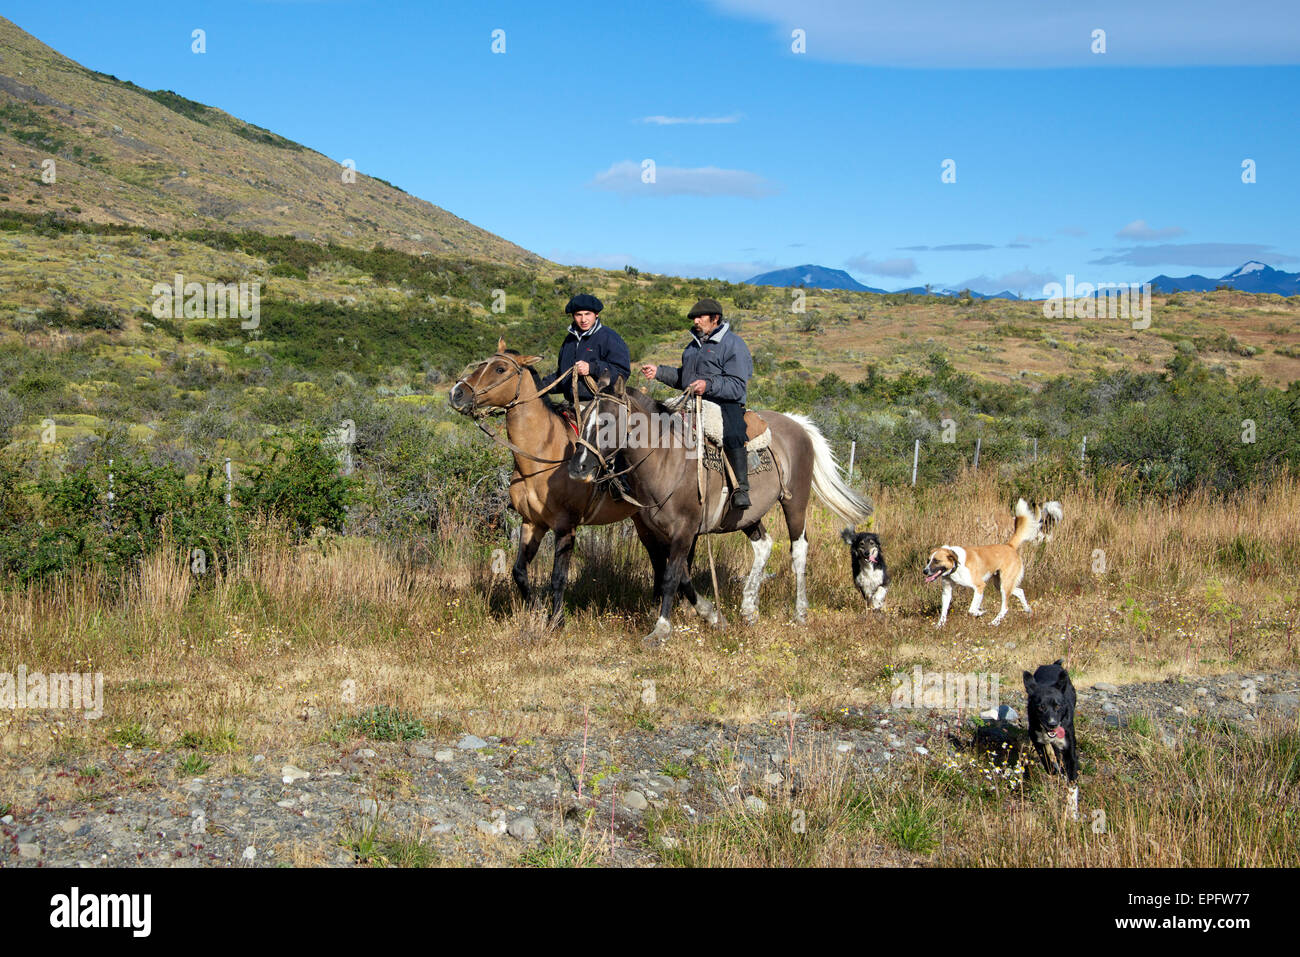 Two Gauchos on horseback with dogs Patagonia Argentina - Stock Image